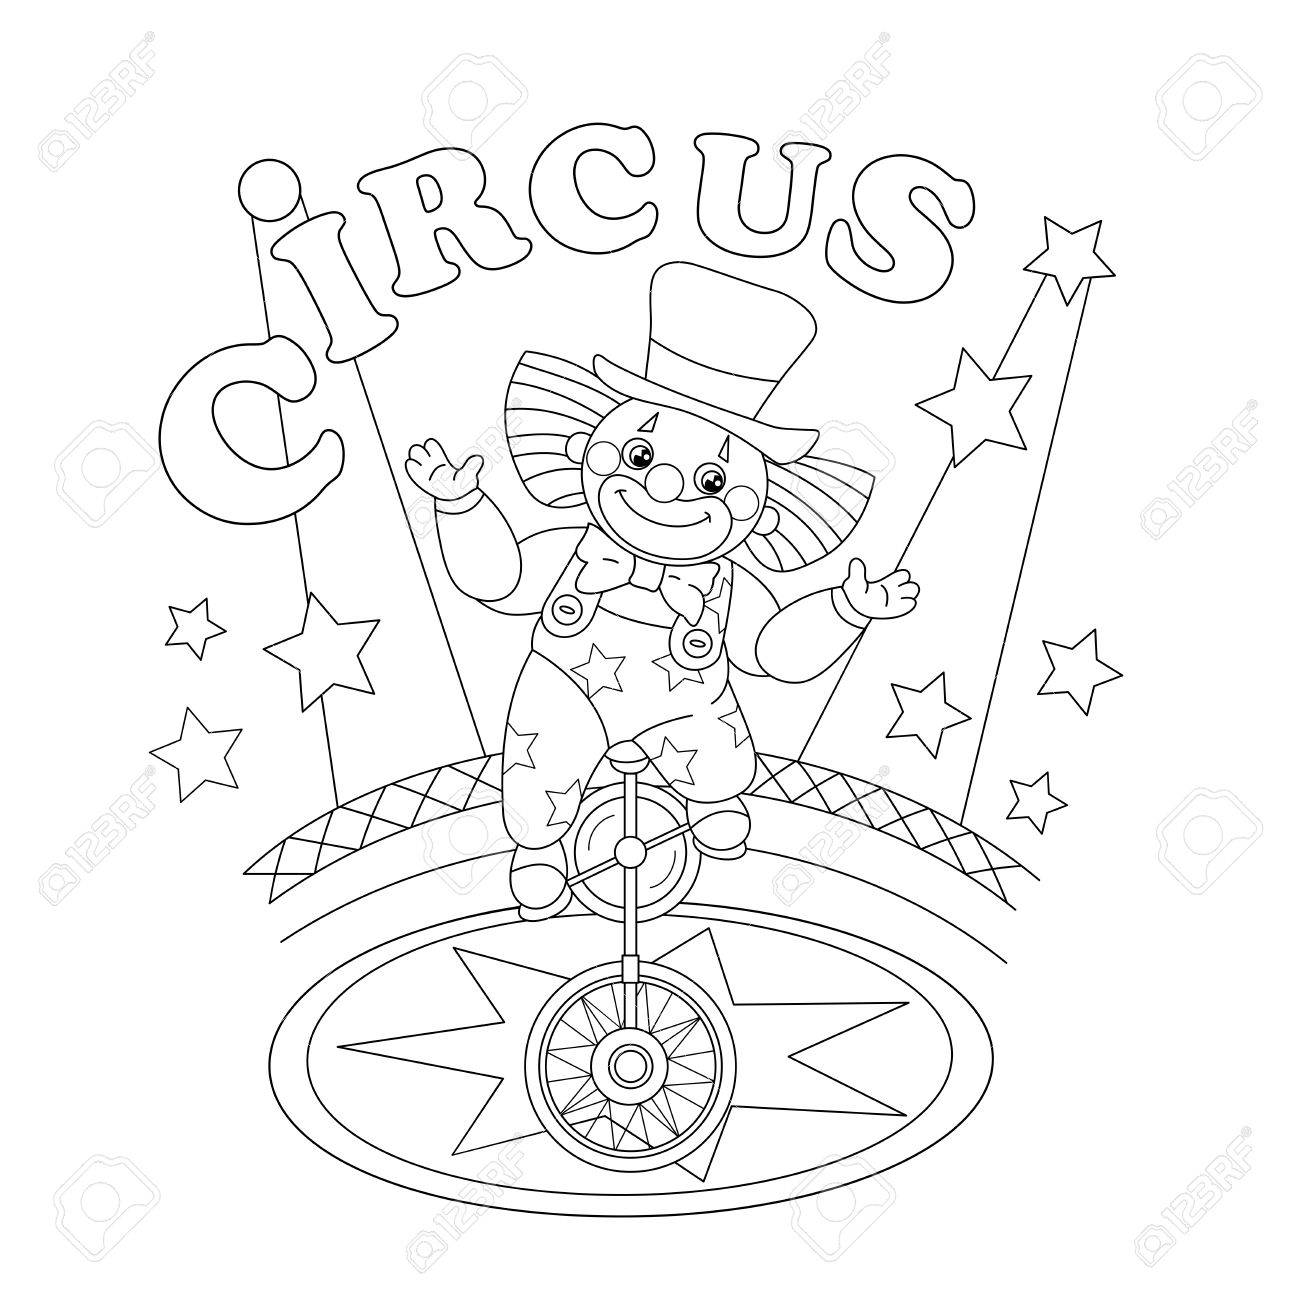 Coloring Page Outline Of A Funny Clown Coloring Book For Kids Royalty Free Cliparts Vectors And Stock Illustration Image 58327947